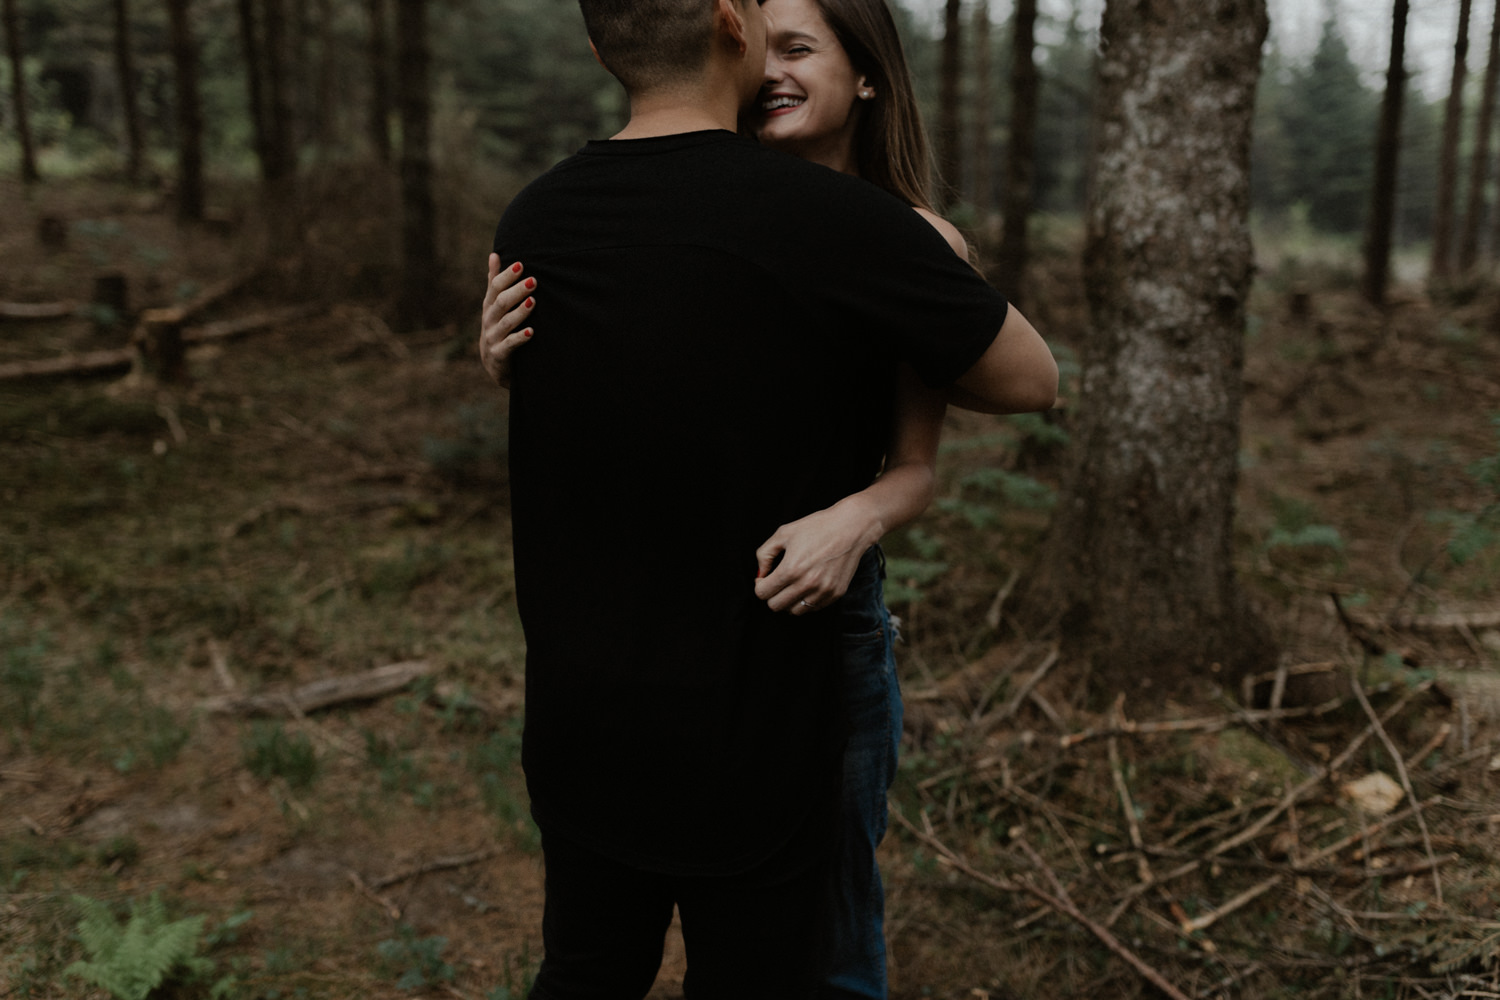 Ariane Marc-Antoine Engagement Iceland Wedding Mariage Quebec Nature Forest Foret Yanick Lesperance (2 of 73).jpg